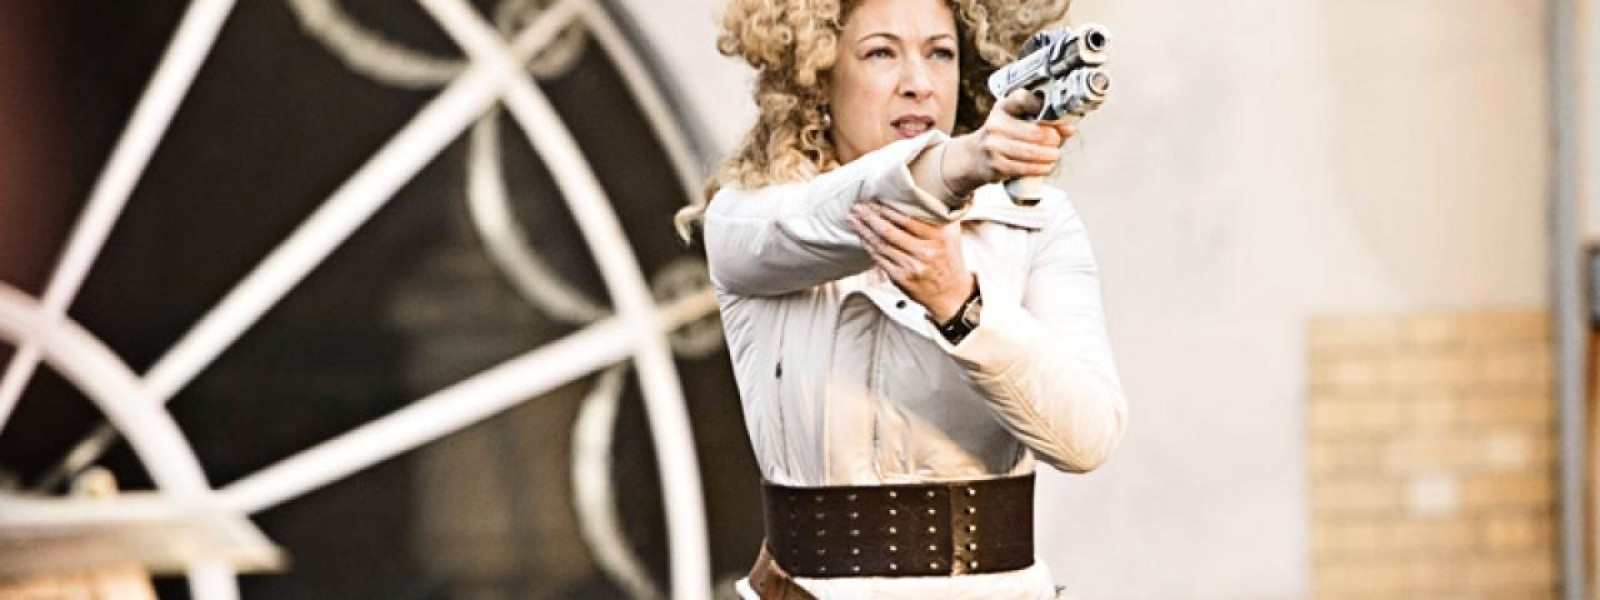 River Song in Action